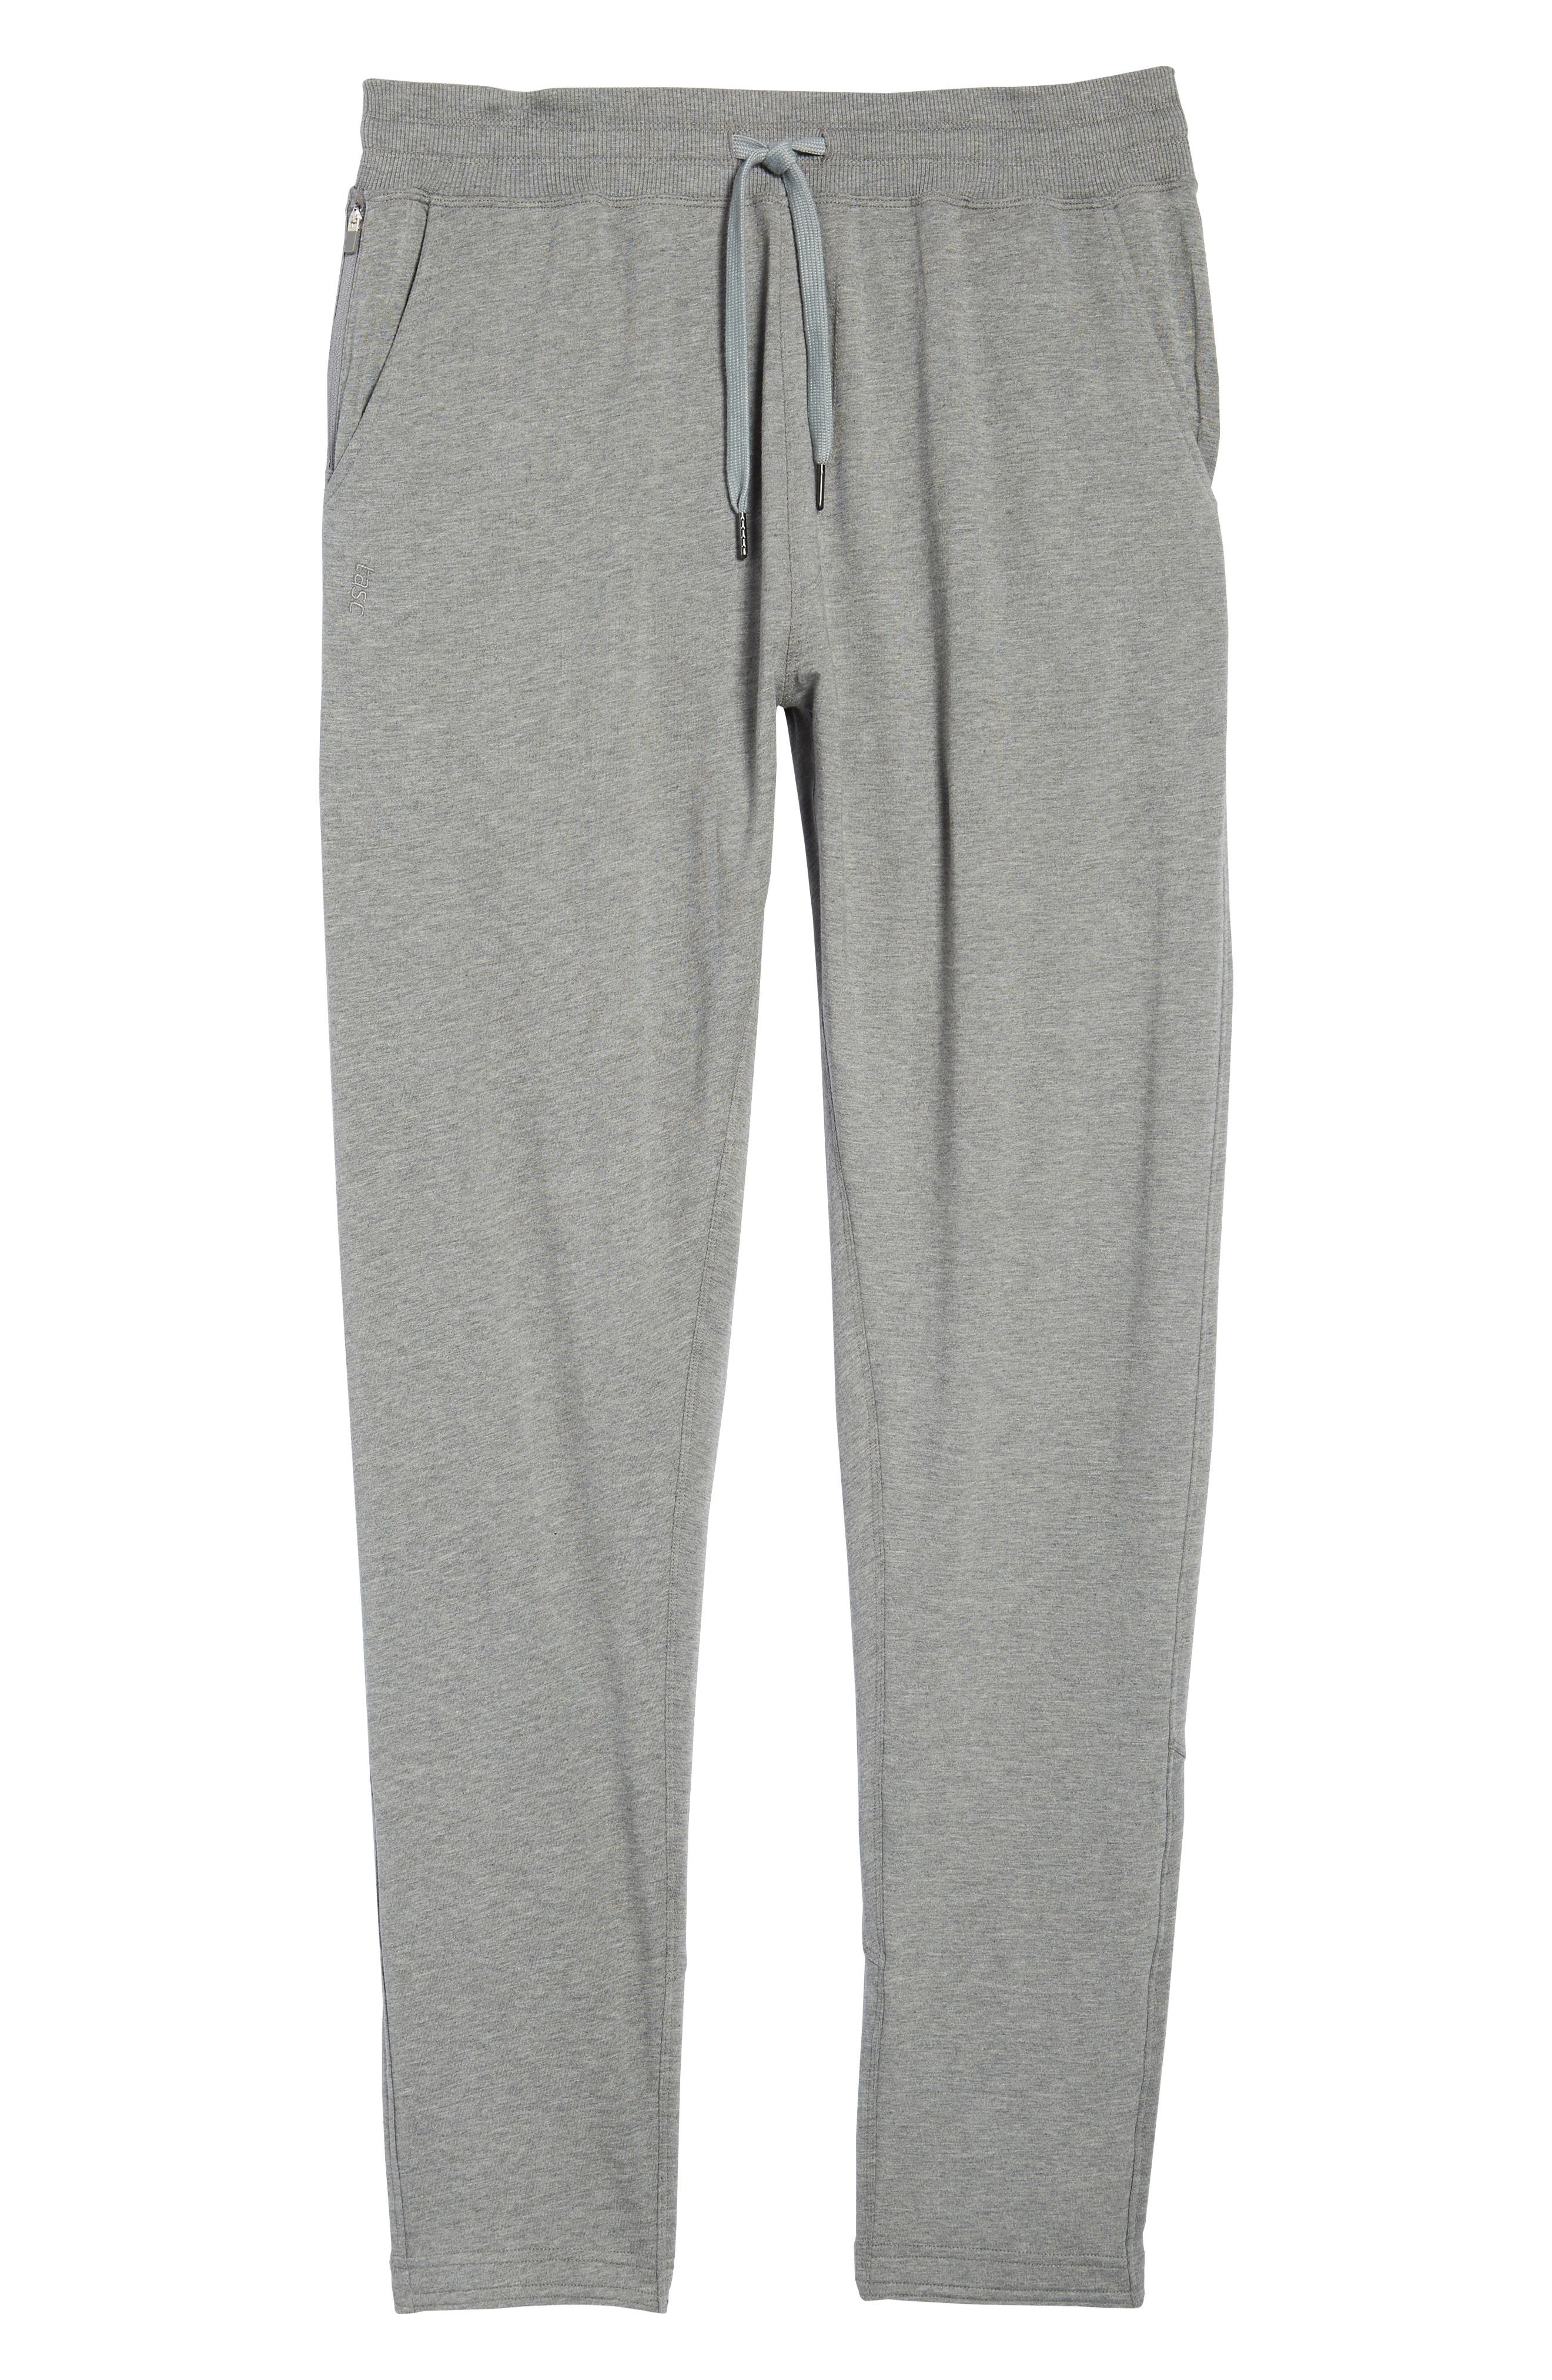 Legacy Lounge Pants,                             Alternate thumbnail 6, color,                             059